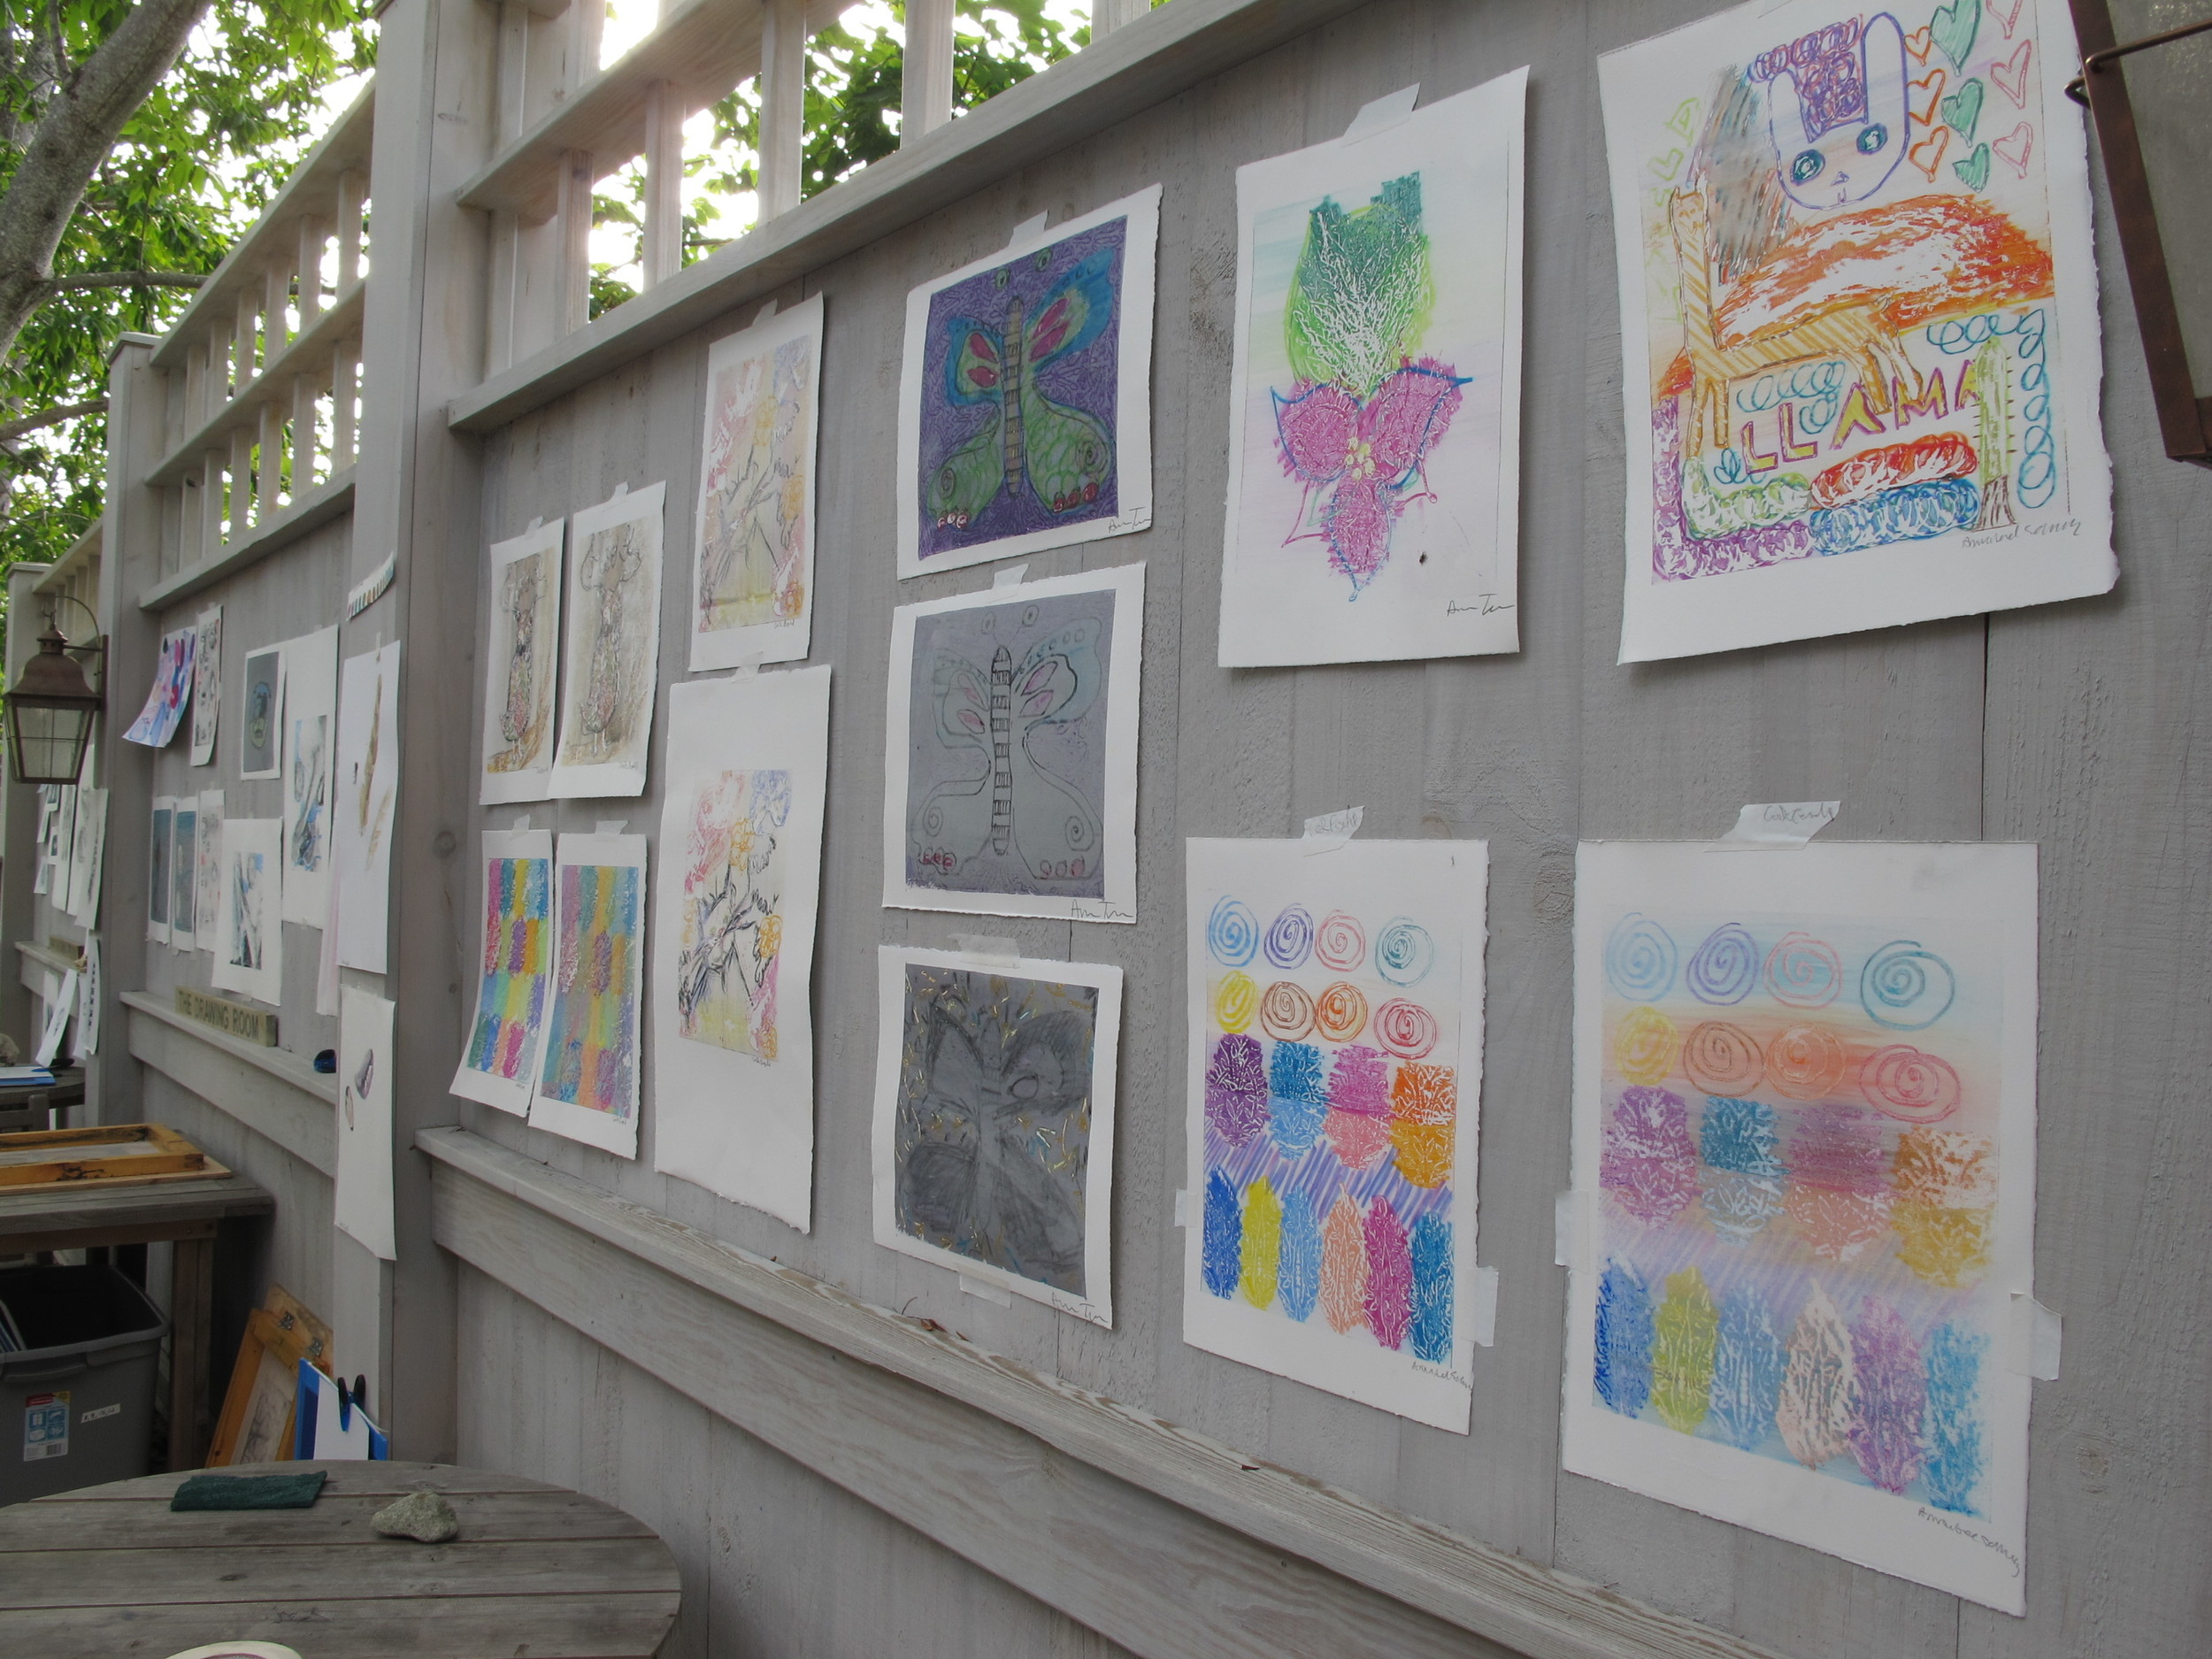 Just a portion of the work created by our eight artists and displayed on the Notebook deck.